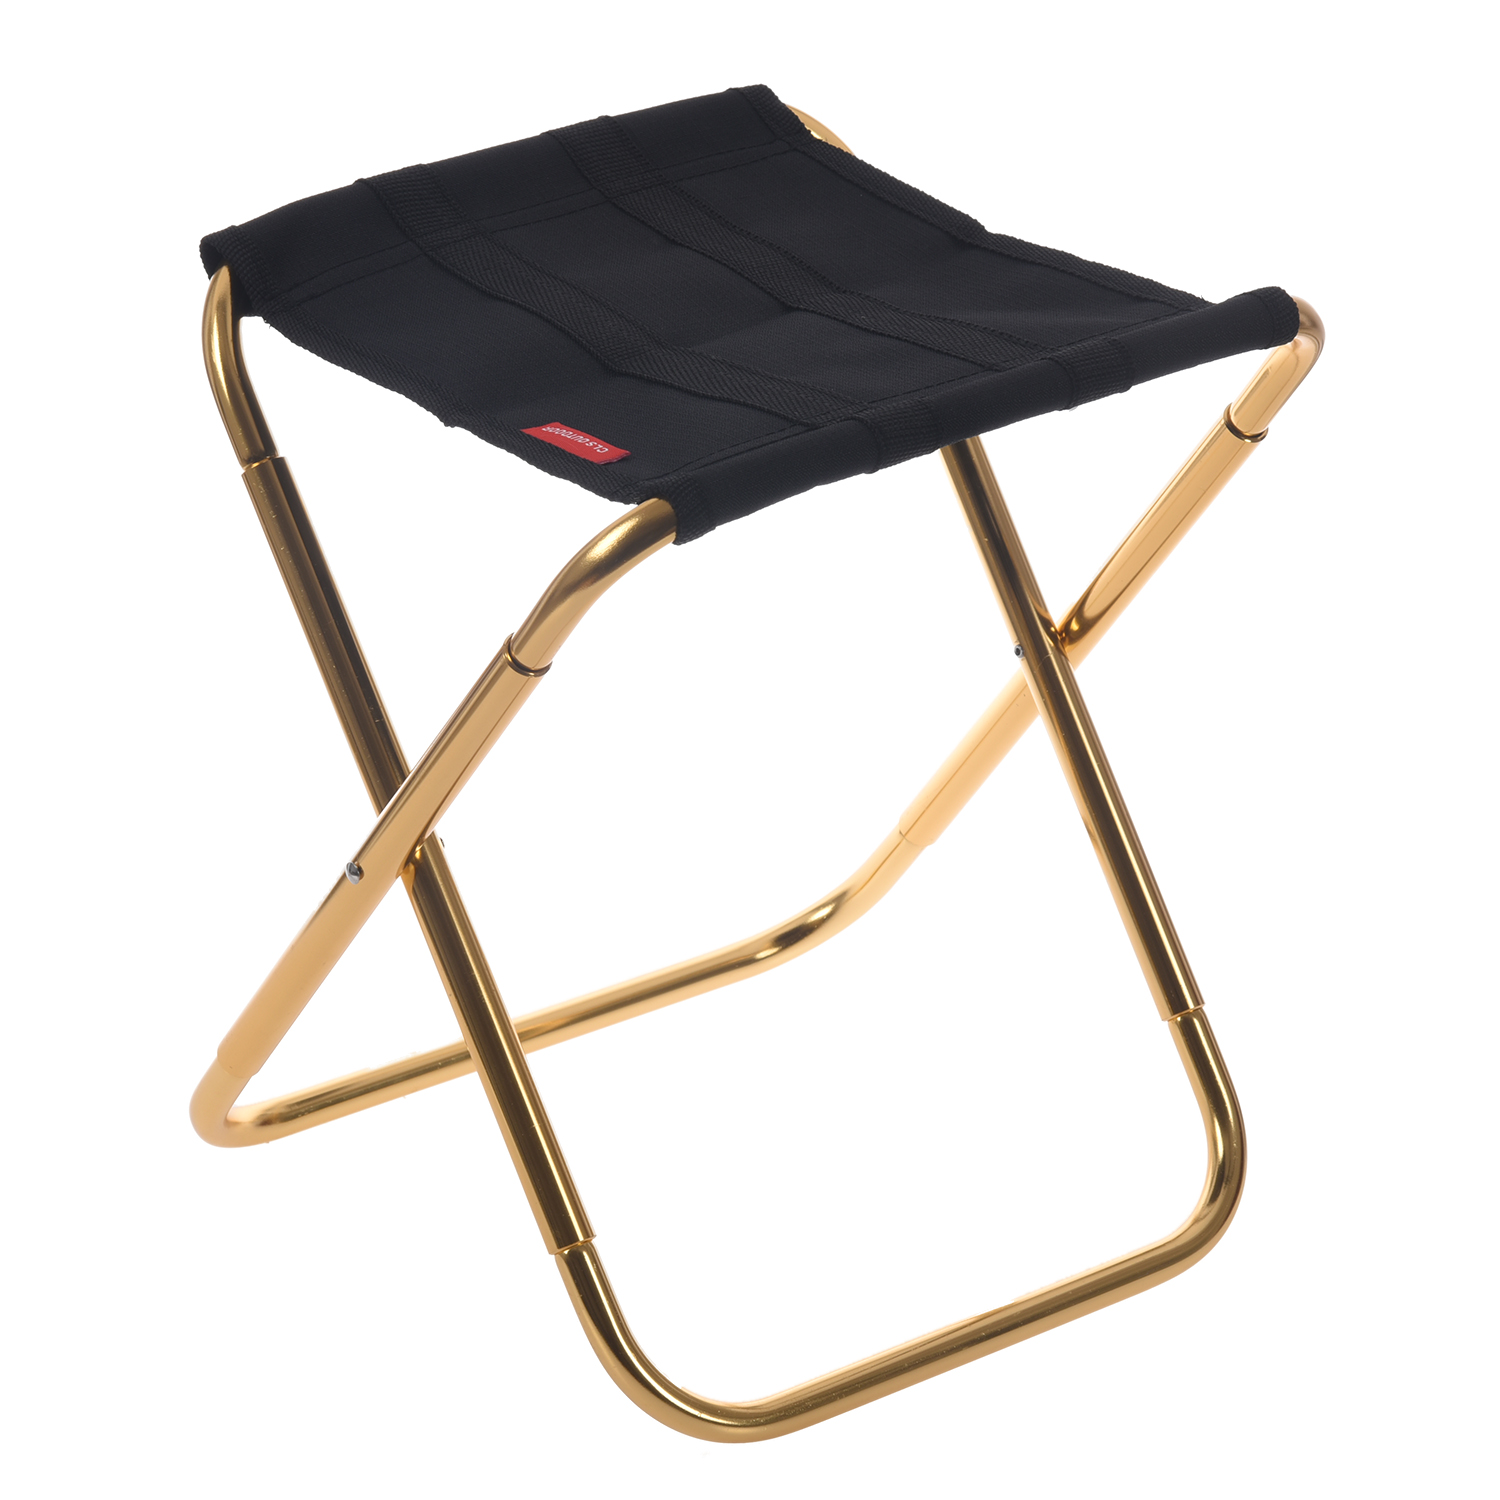 Beach Chairs On Sale Us 9 76 11 Off Hot Sale High Quality Fishing Chair Seat Folding Outdoor Camping Stool For Picnic Bbq Beach In Beach Chairs From Furniture On